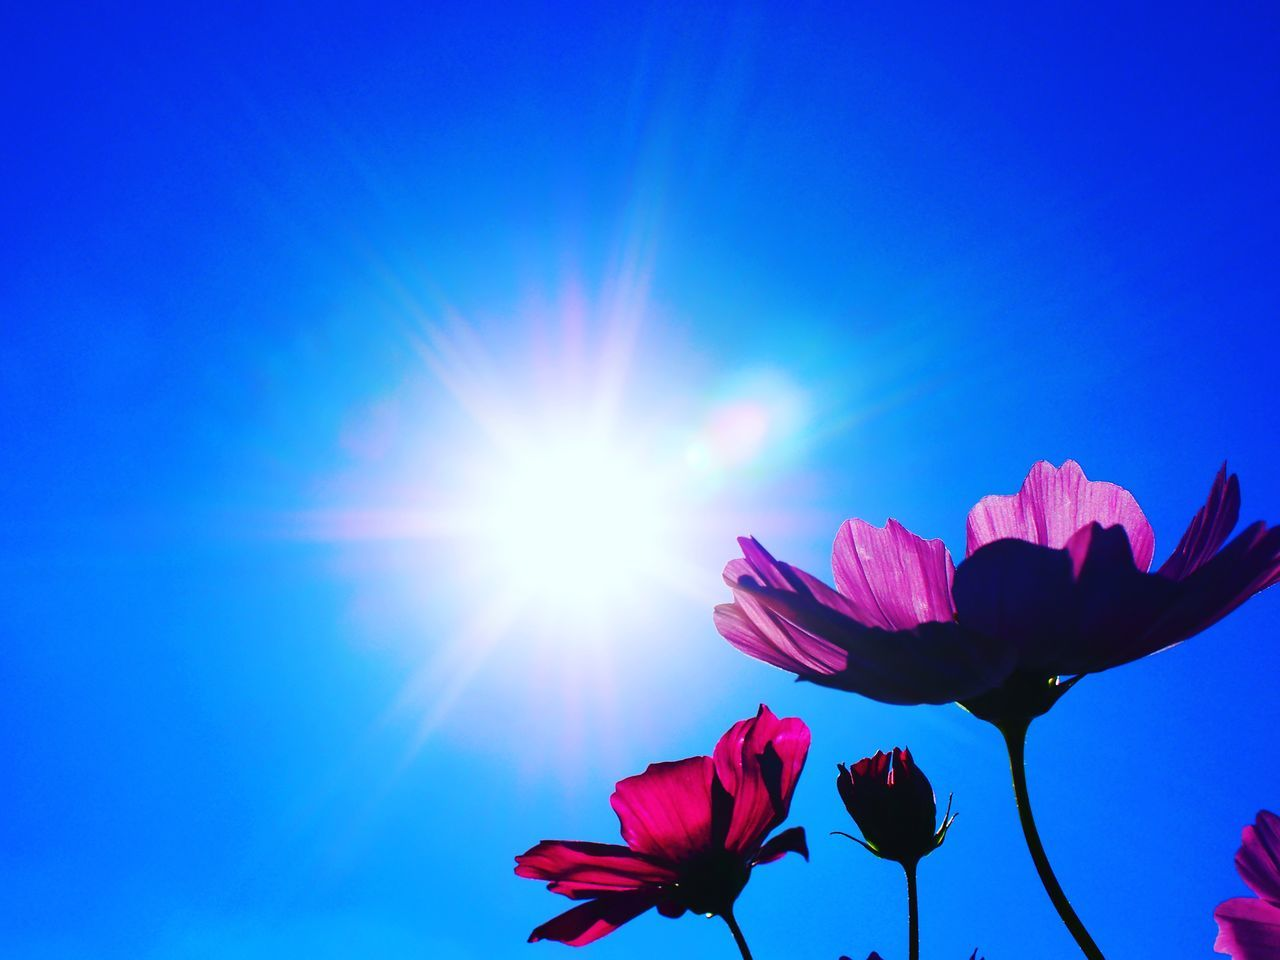 flower, beauty in nature, fragility, petal, nature, freshness, flower head, sunlight, growth, pink color, lens flare, blooming, no people, blue, sky, sun, plant, low angle view, outdoors, day, close-up, springtime